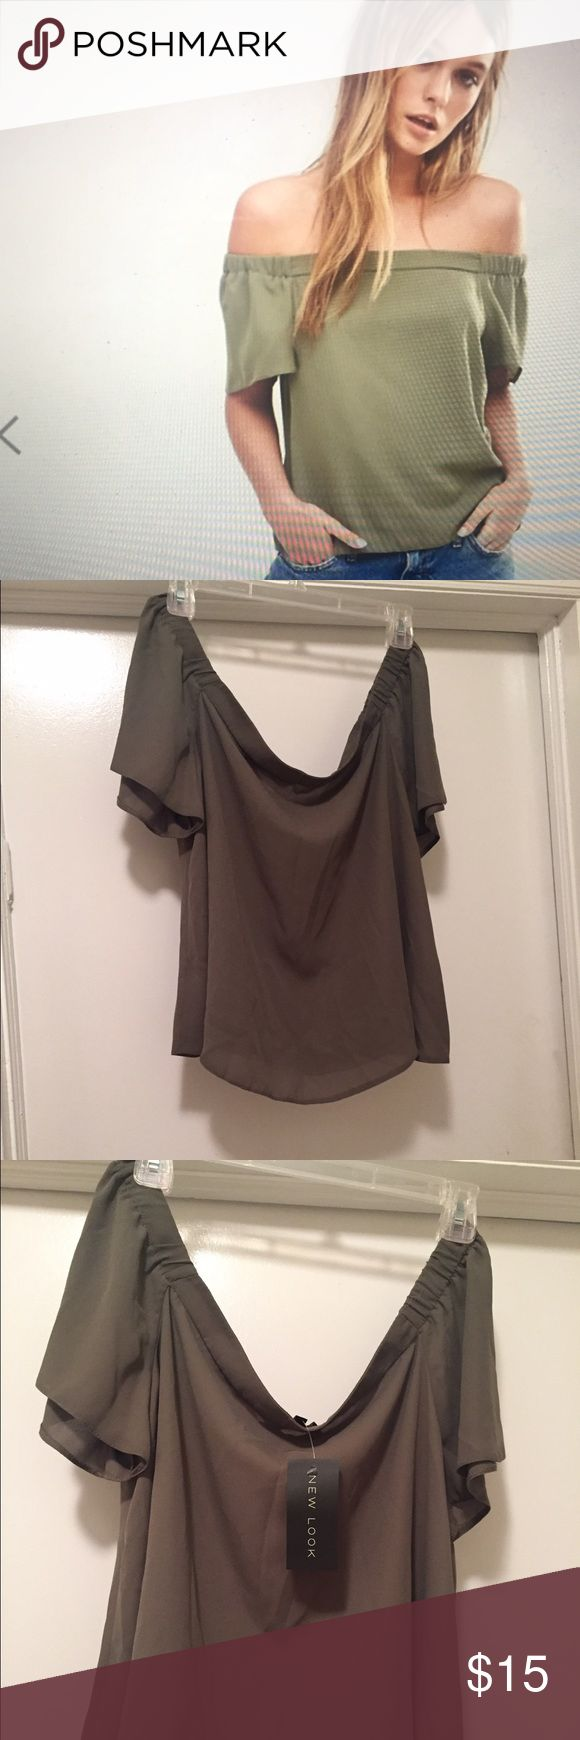 New Bardot swing top Very cute and flirty 😉 olive green and US size 12. Asos.com --Brand New Look. New and never worn. ASOS Tops